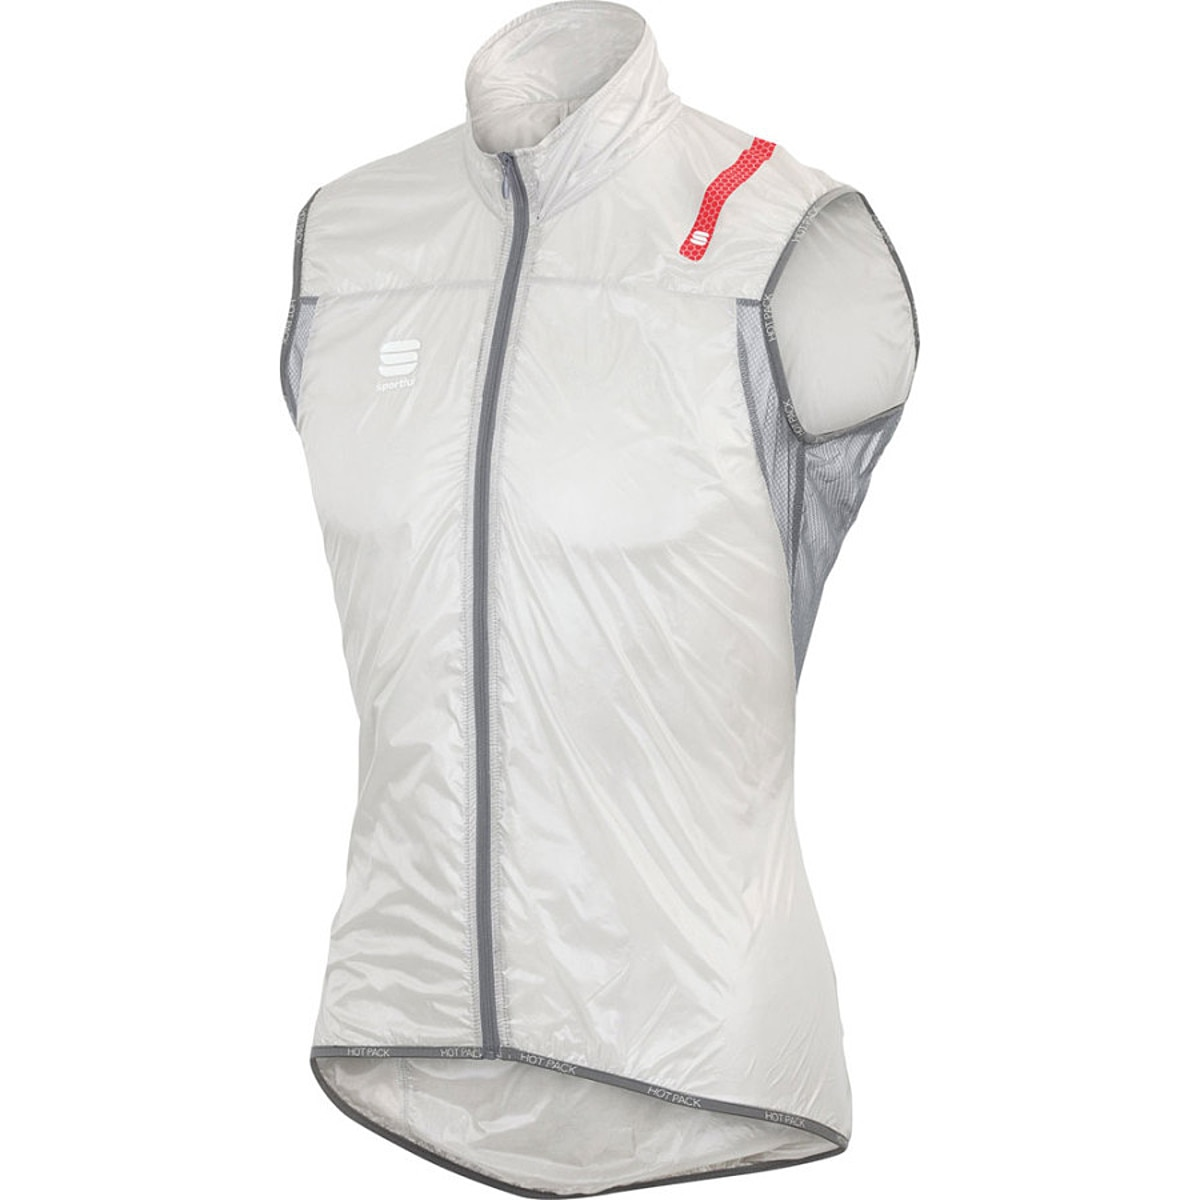 Sportful Hot Pack Ultralight Vest Men's